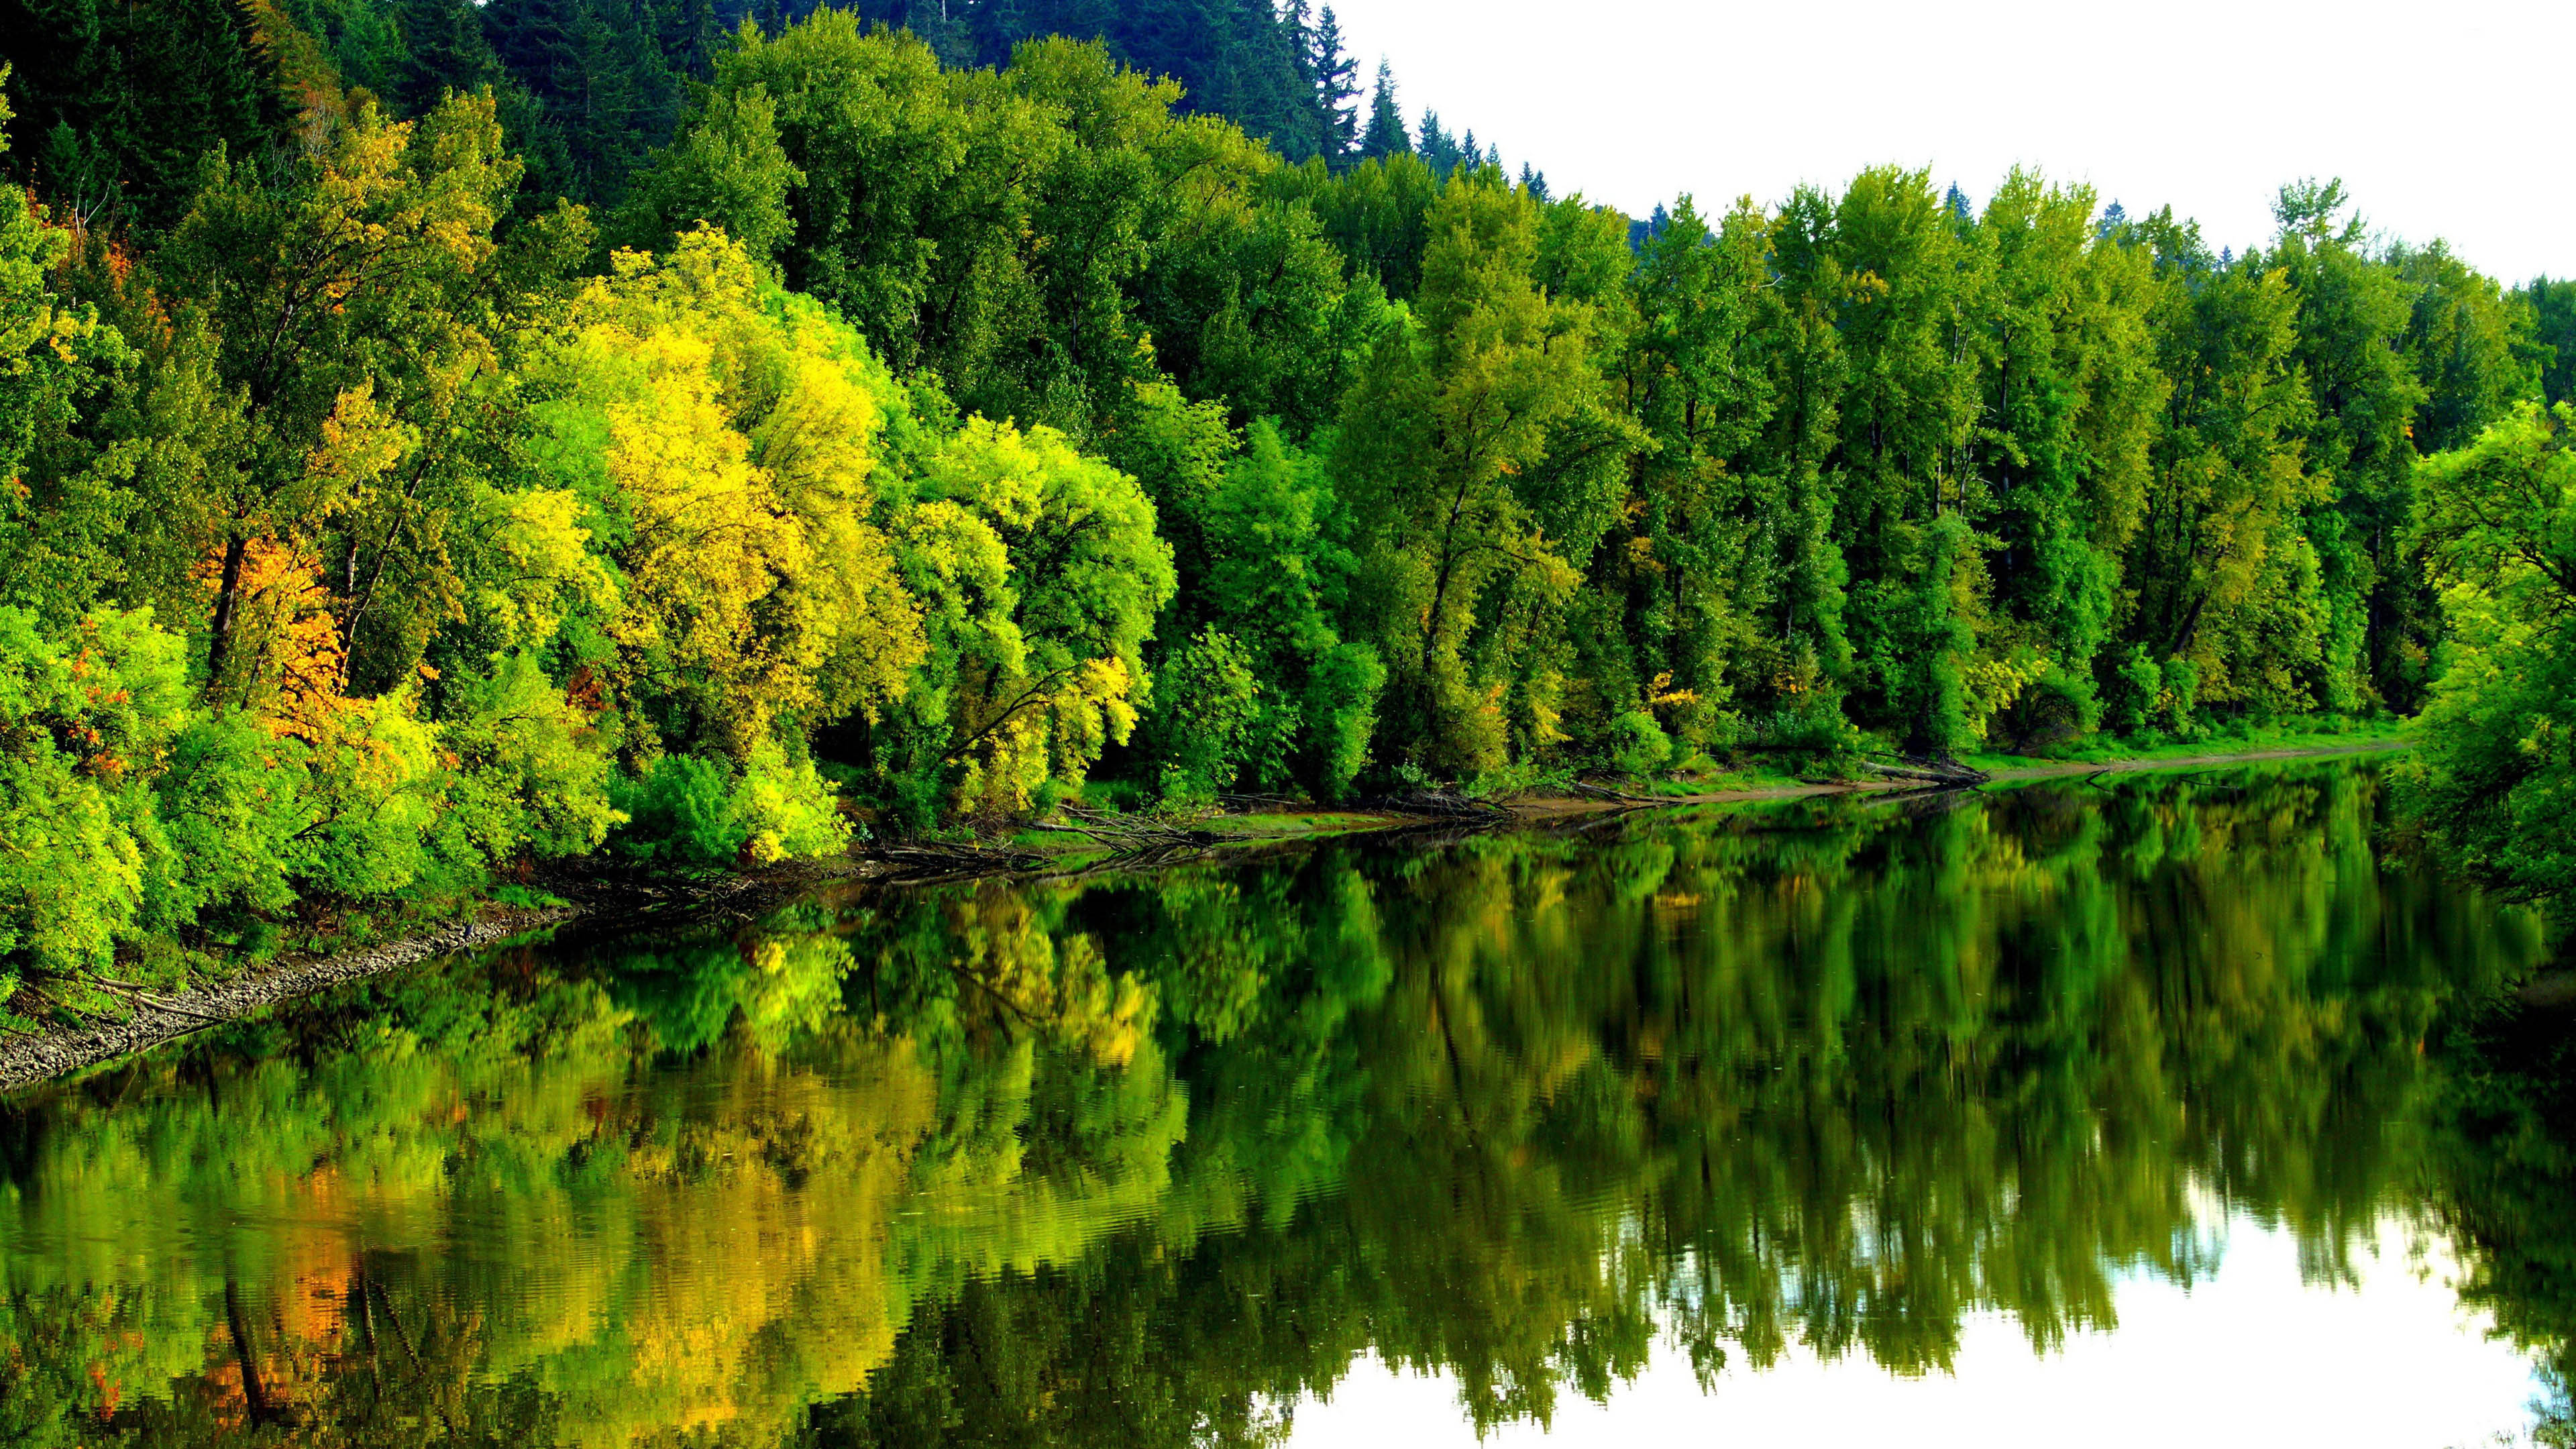 4K Wallpapers with Jungle and River Pictures Free | HD ...